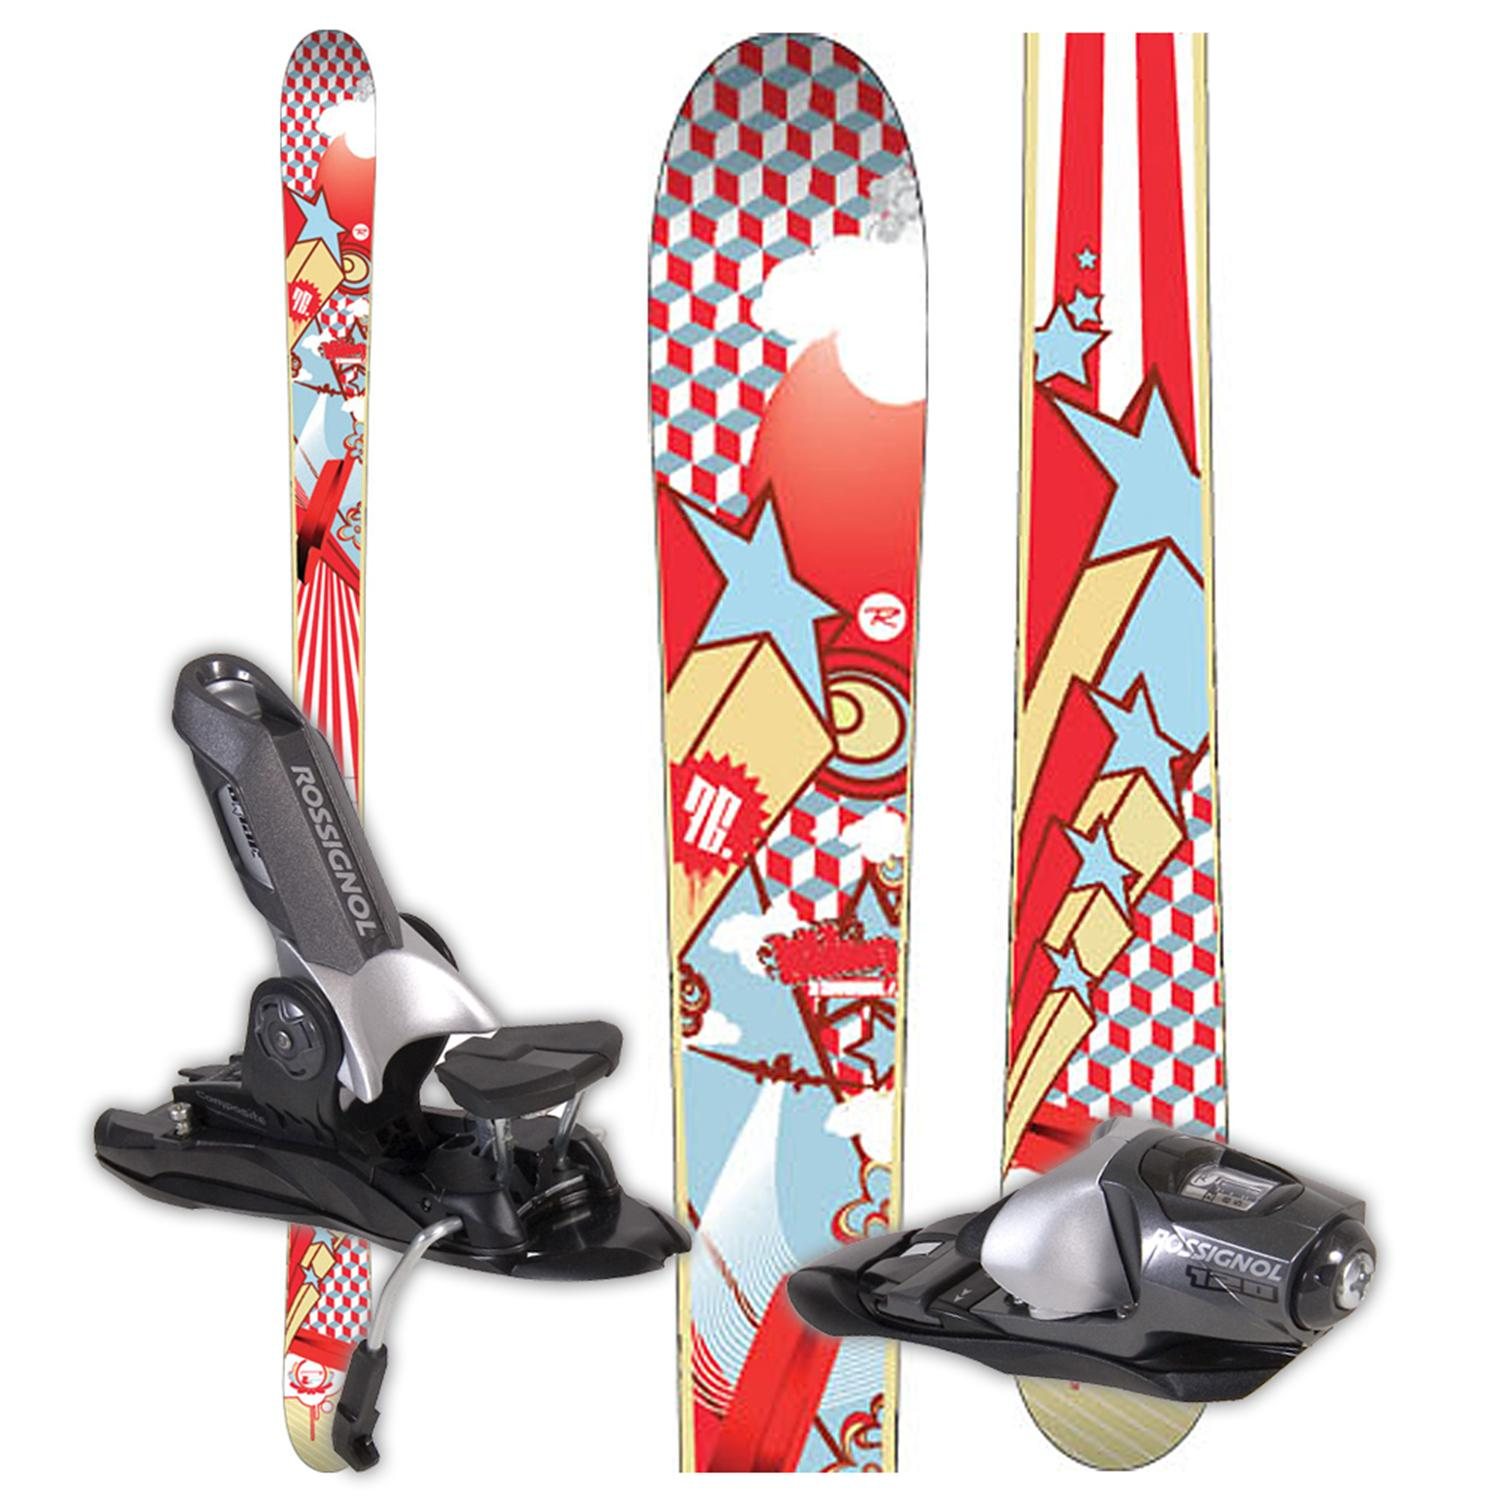 rossignol scratch bling skis bindings used 2008 evo. Black Bedroom Furniture Sets. Home Design Ideas